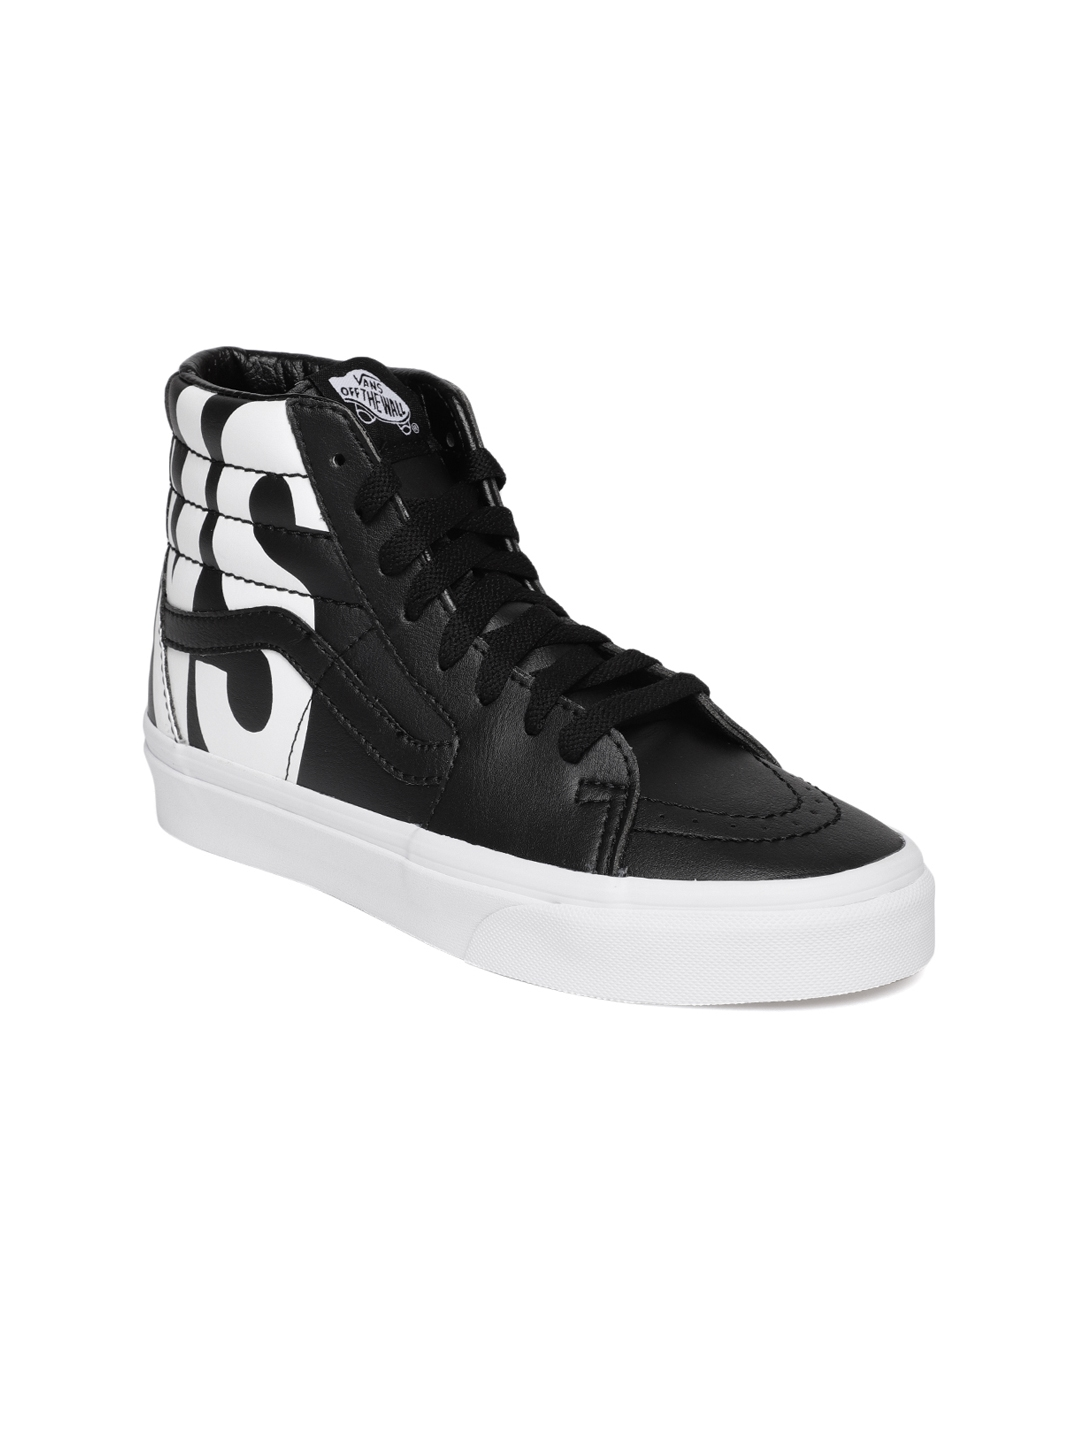 002679c9622 Buy Vans Unisex Black SK8 Hi Solid Synthetic High Top Sneakers ...